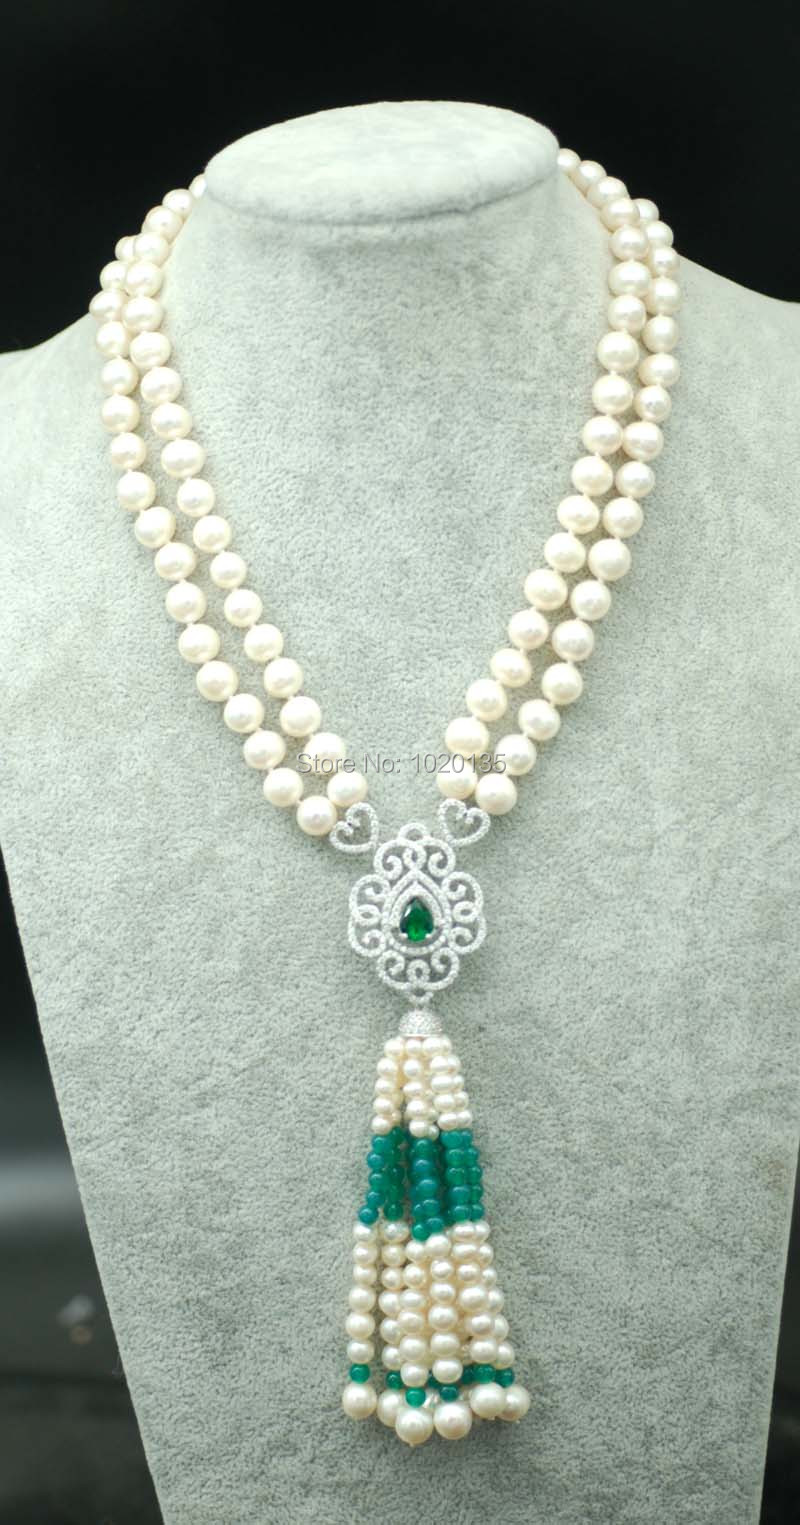 2rows 8-9mm near round white freshwater pearl necklace amazing gift hot FPPJ green stone beads polyresin round beads necklace 46 49cm 5 pack